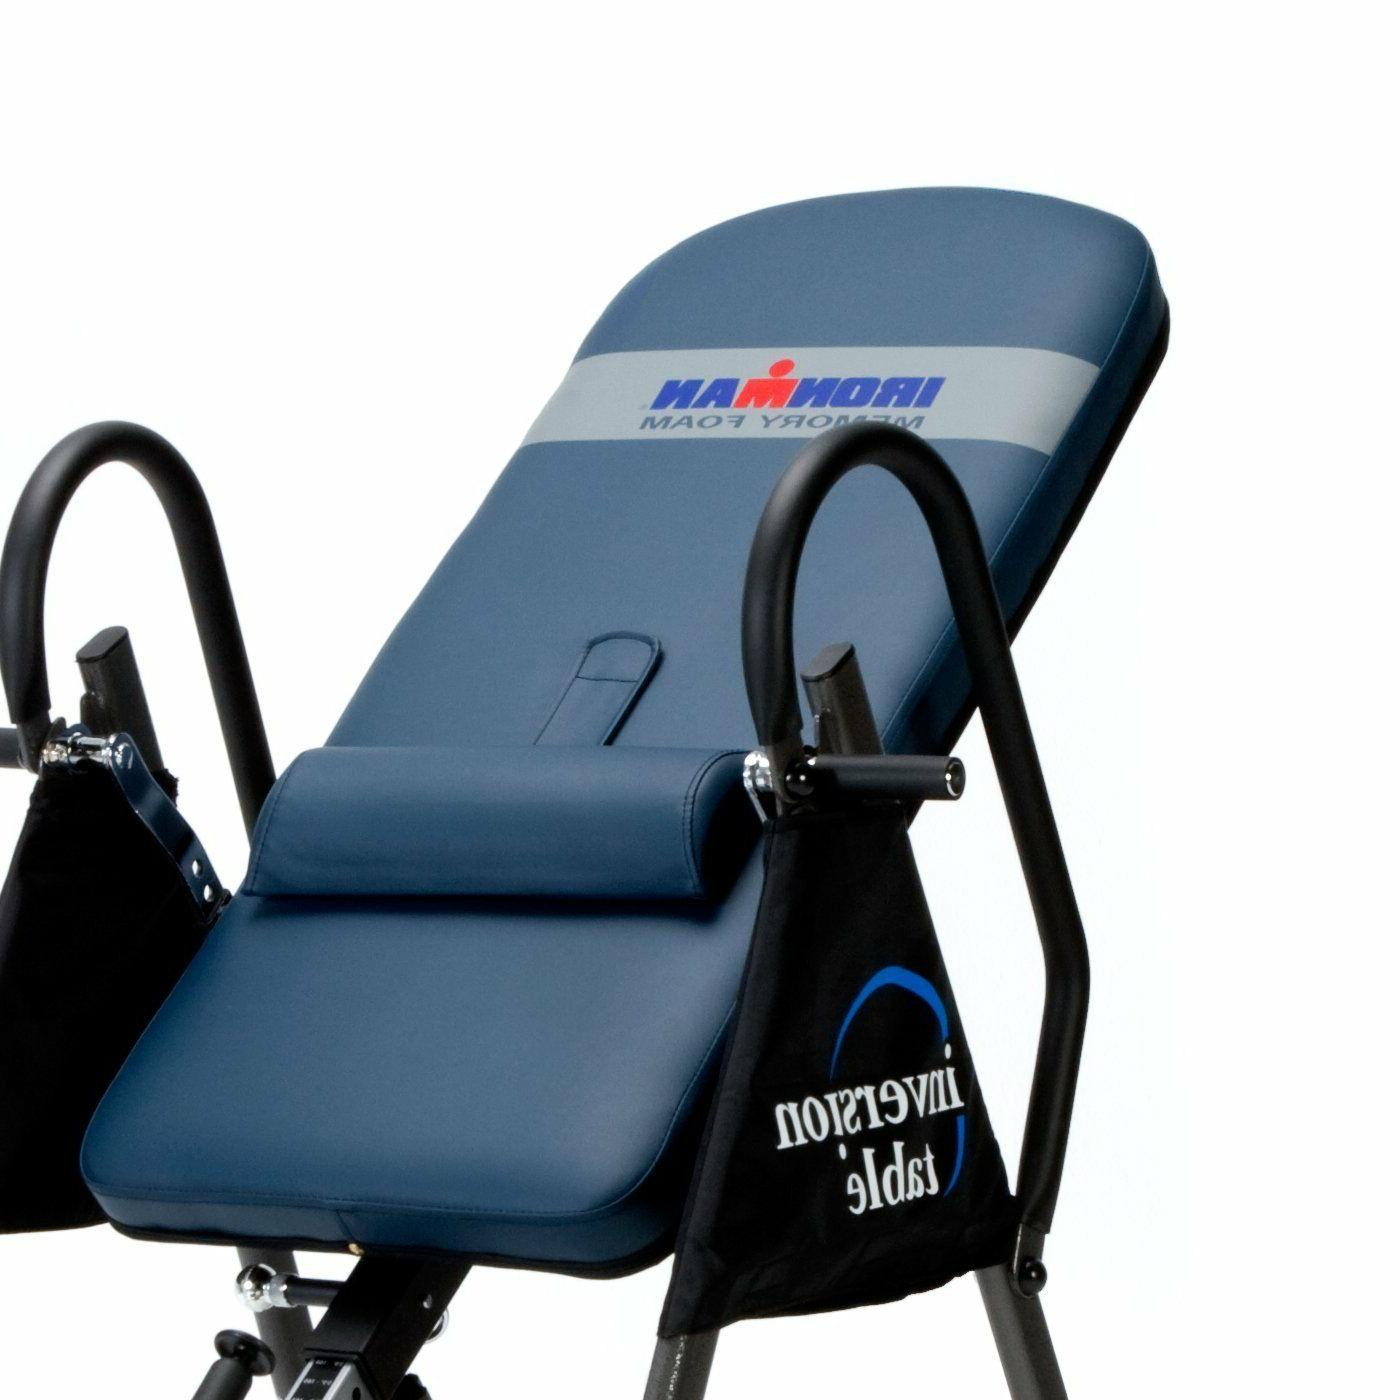 Ironman Gravity 5402 Inversion Fitness Workout Core Relief